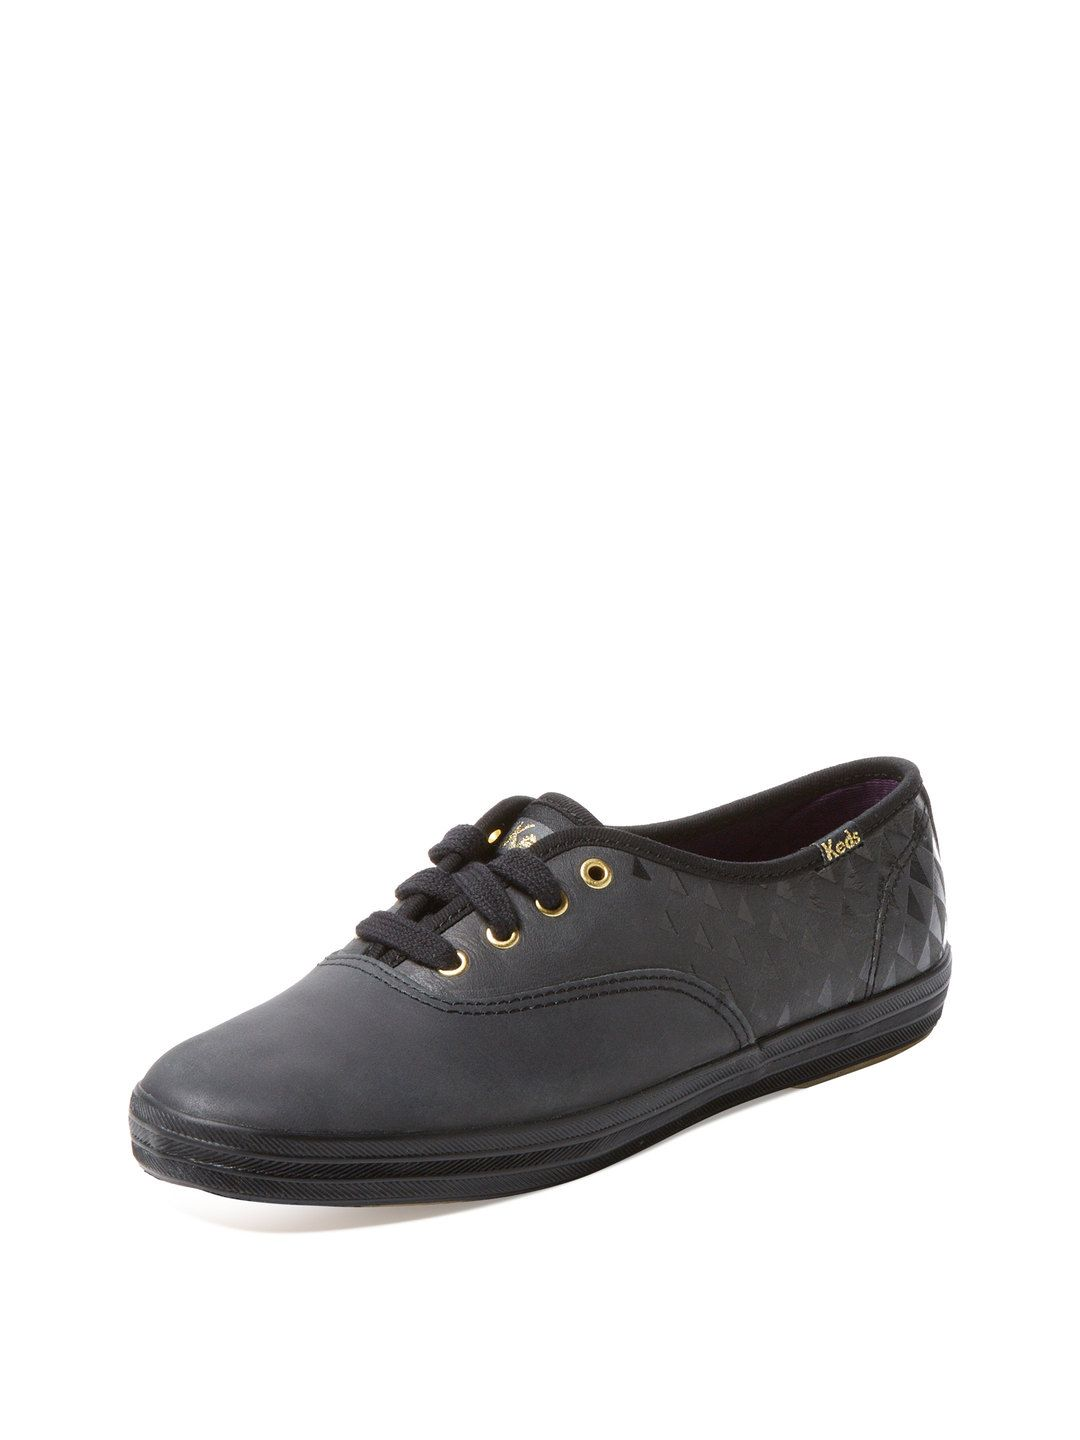 dac662c41 Champion Embossed Leather Low Top Sneaker by Keds at Gilt